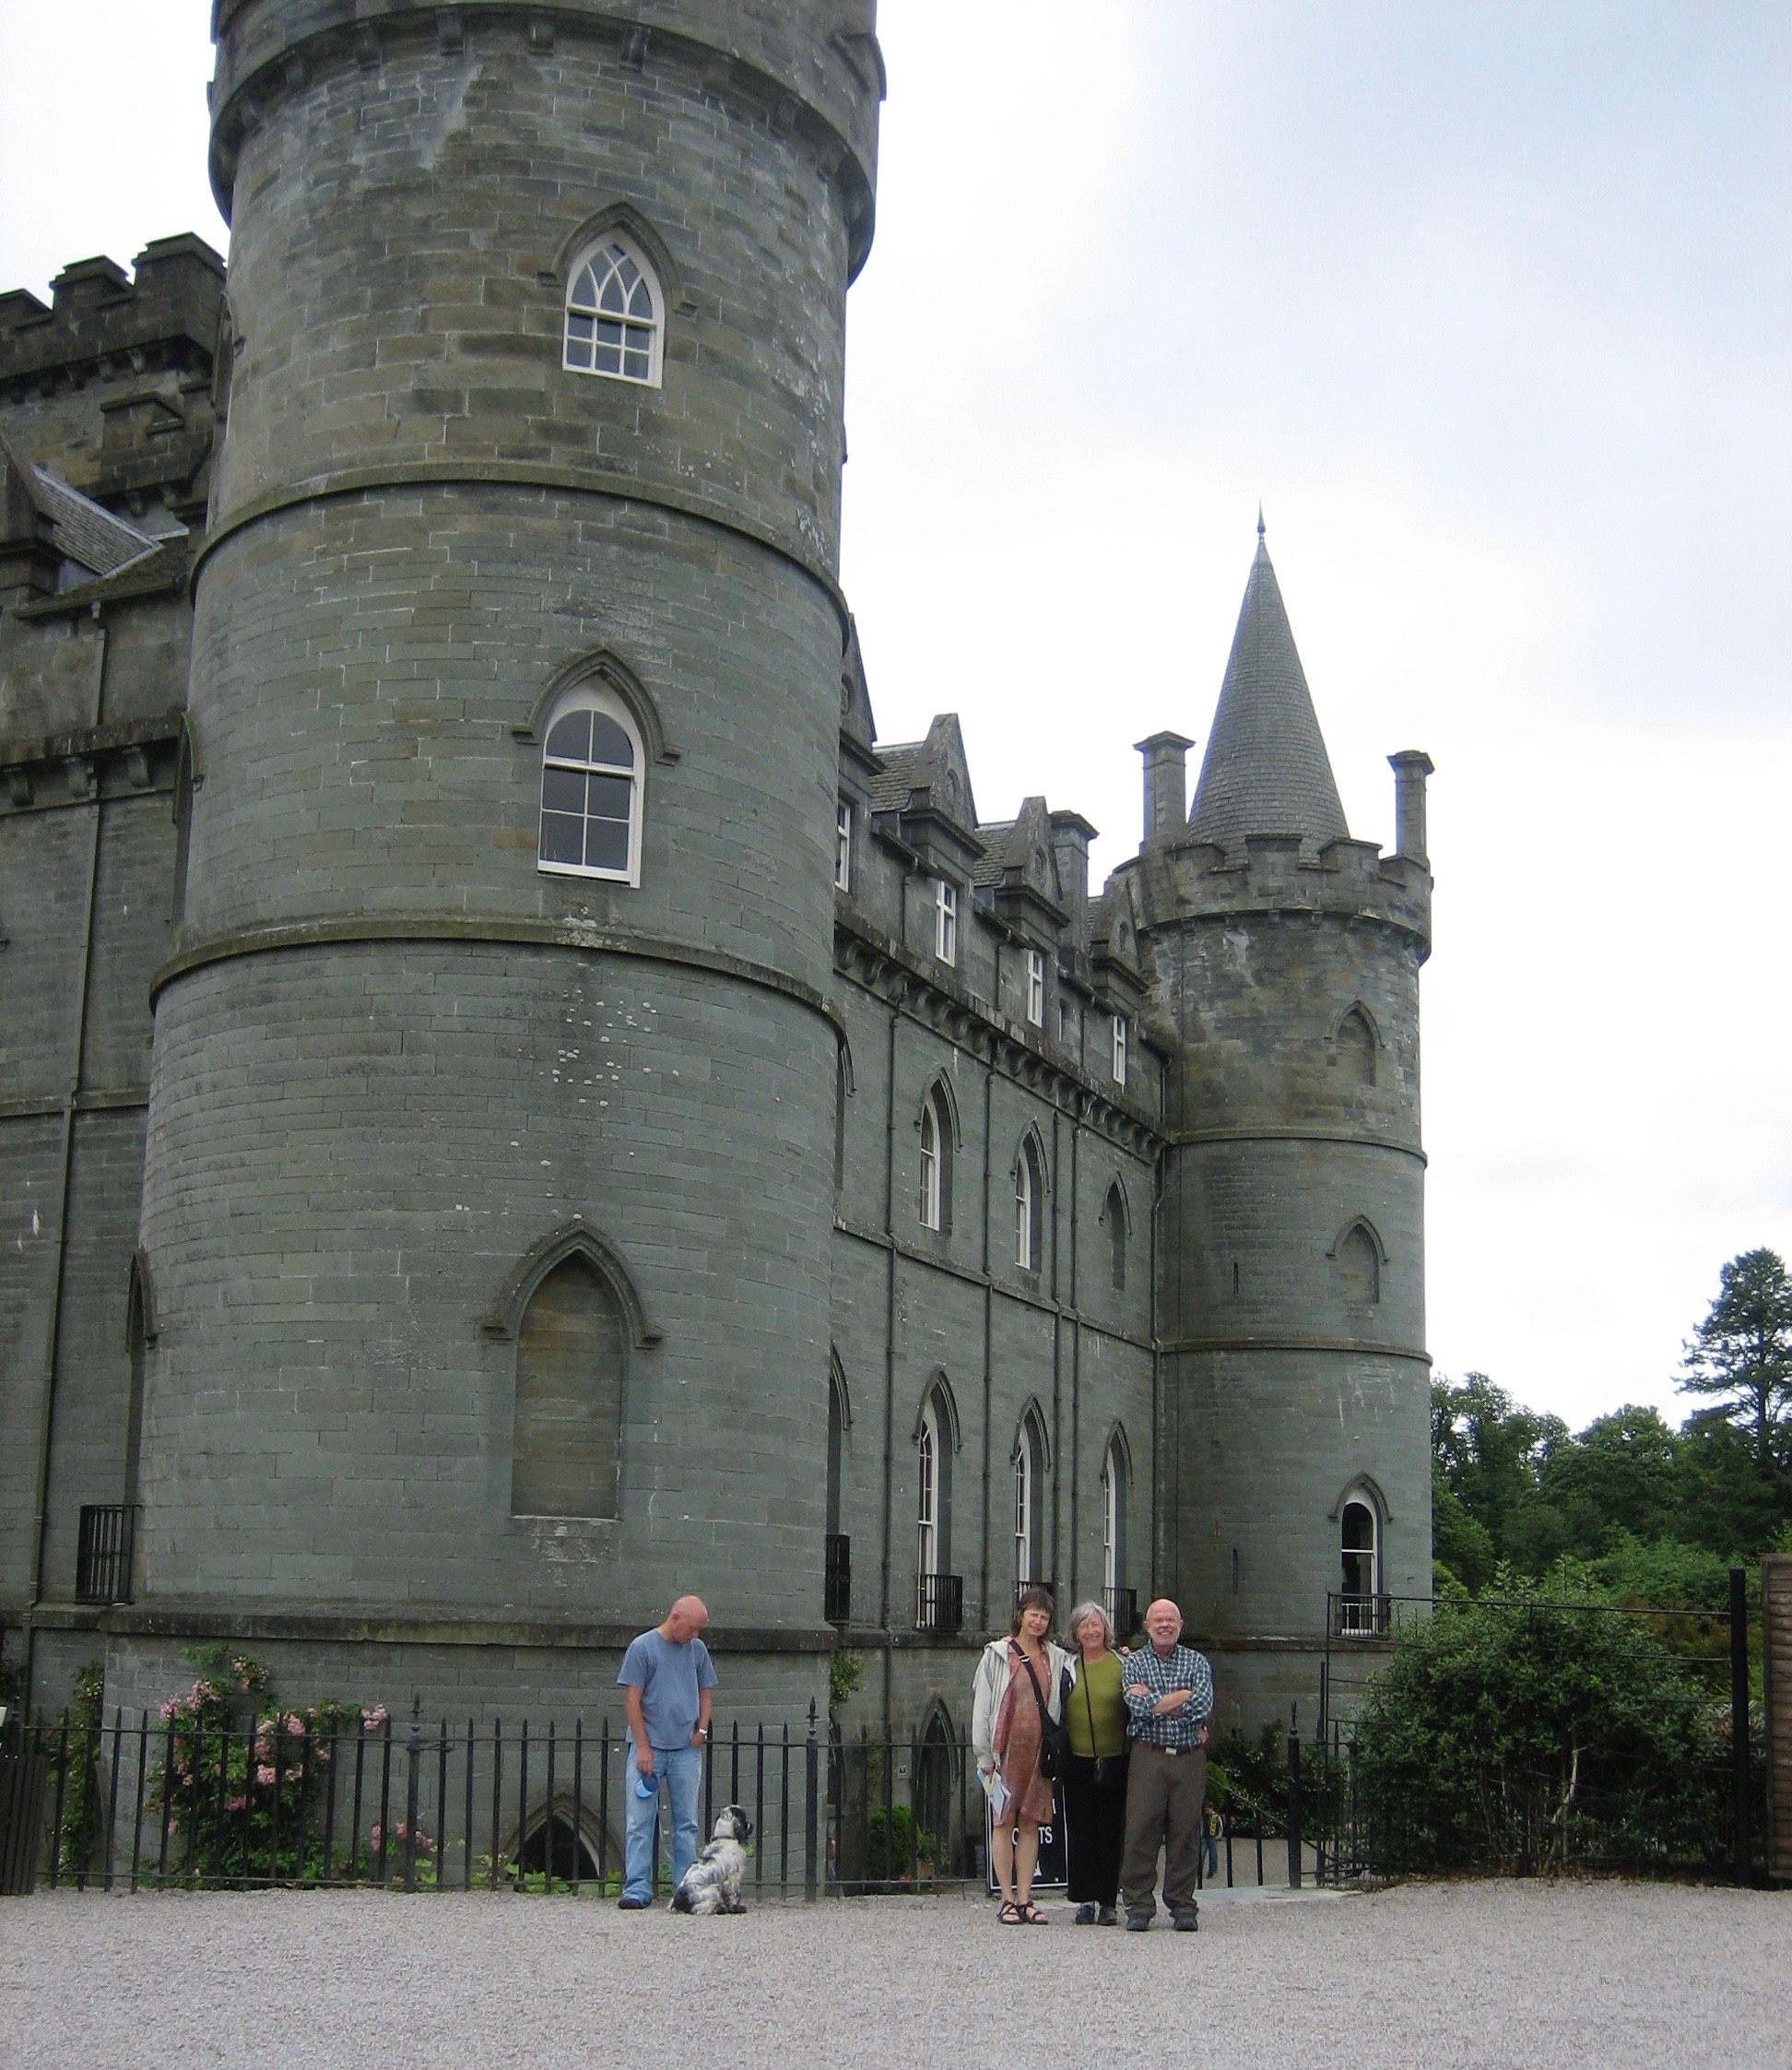 Castle Inverary, seat of Clan Campbell